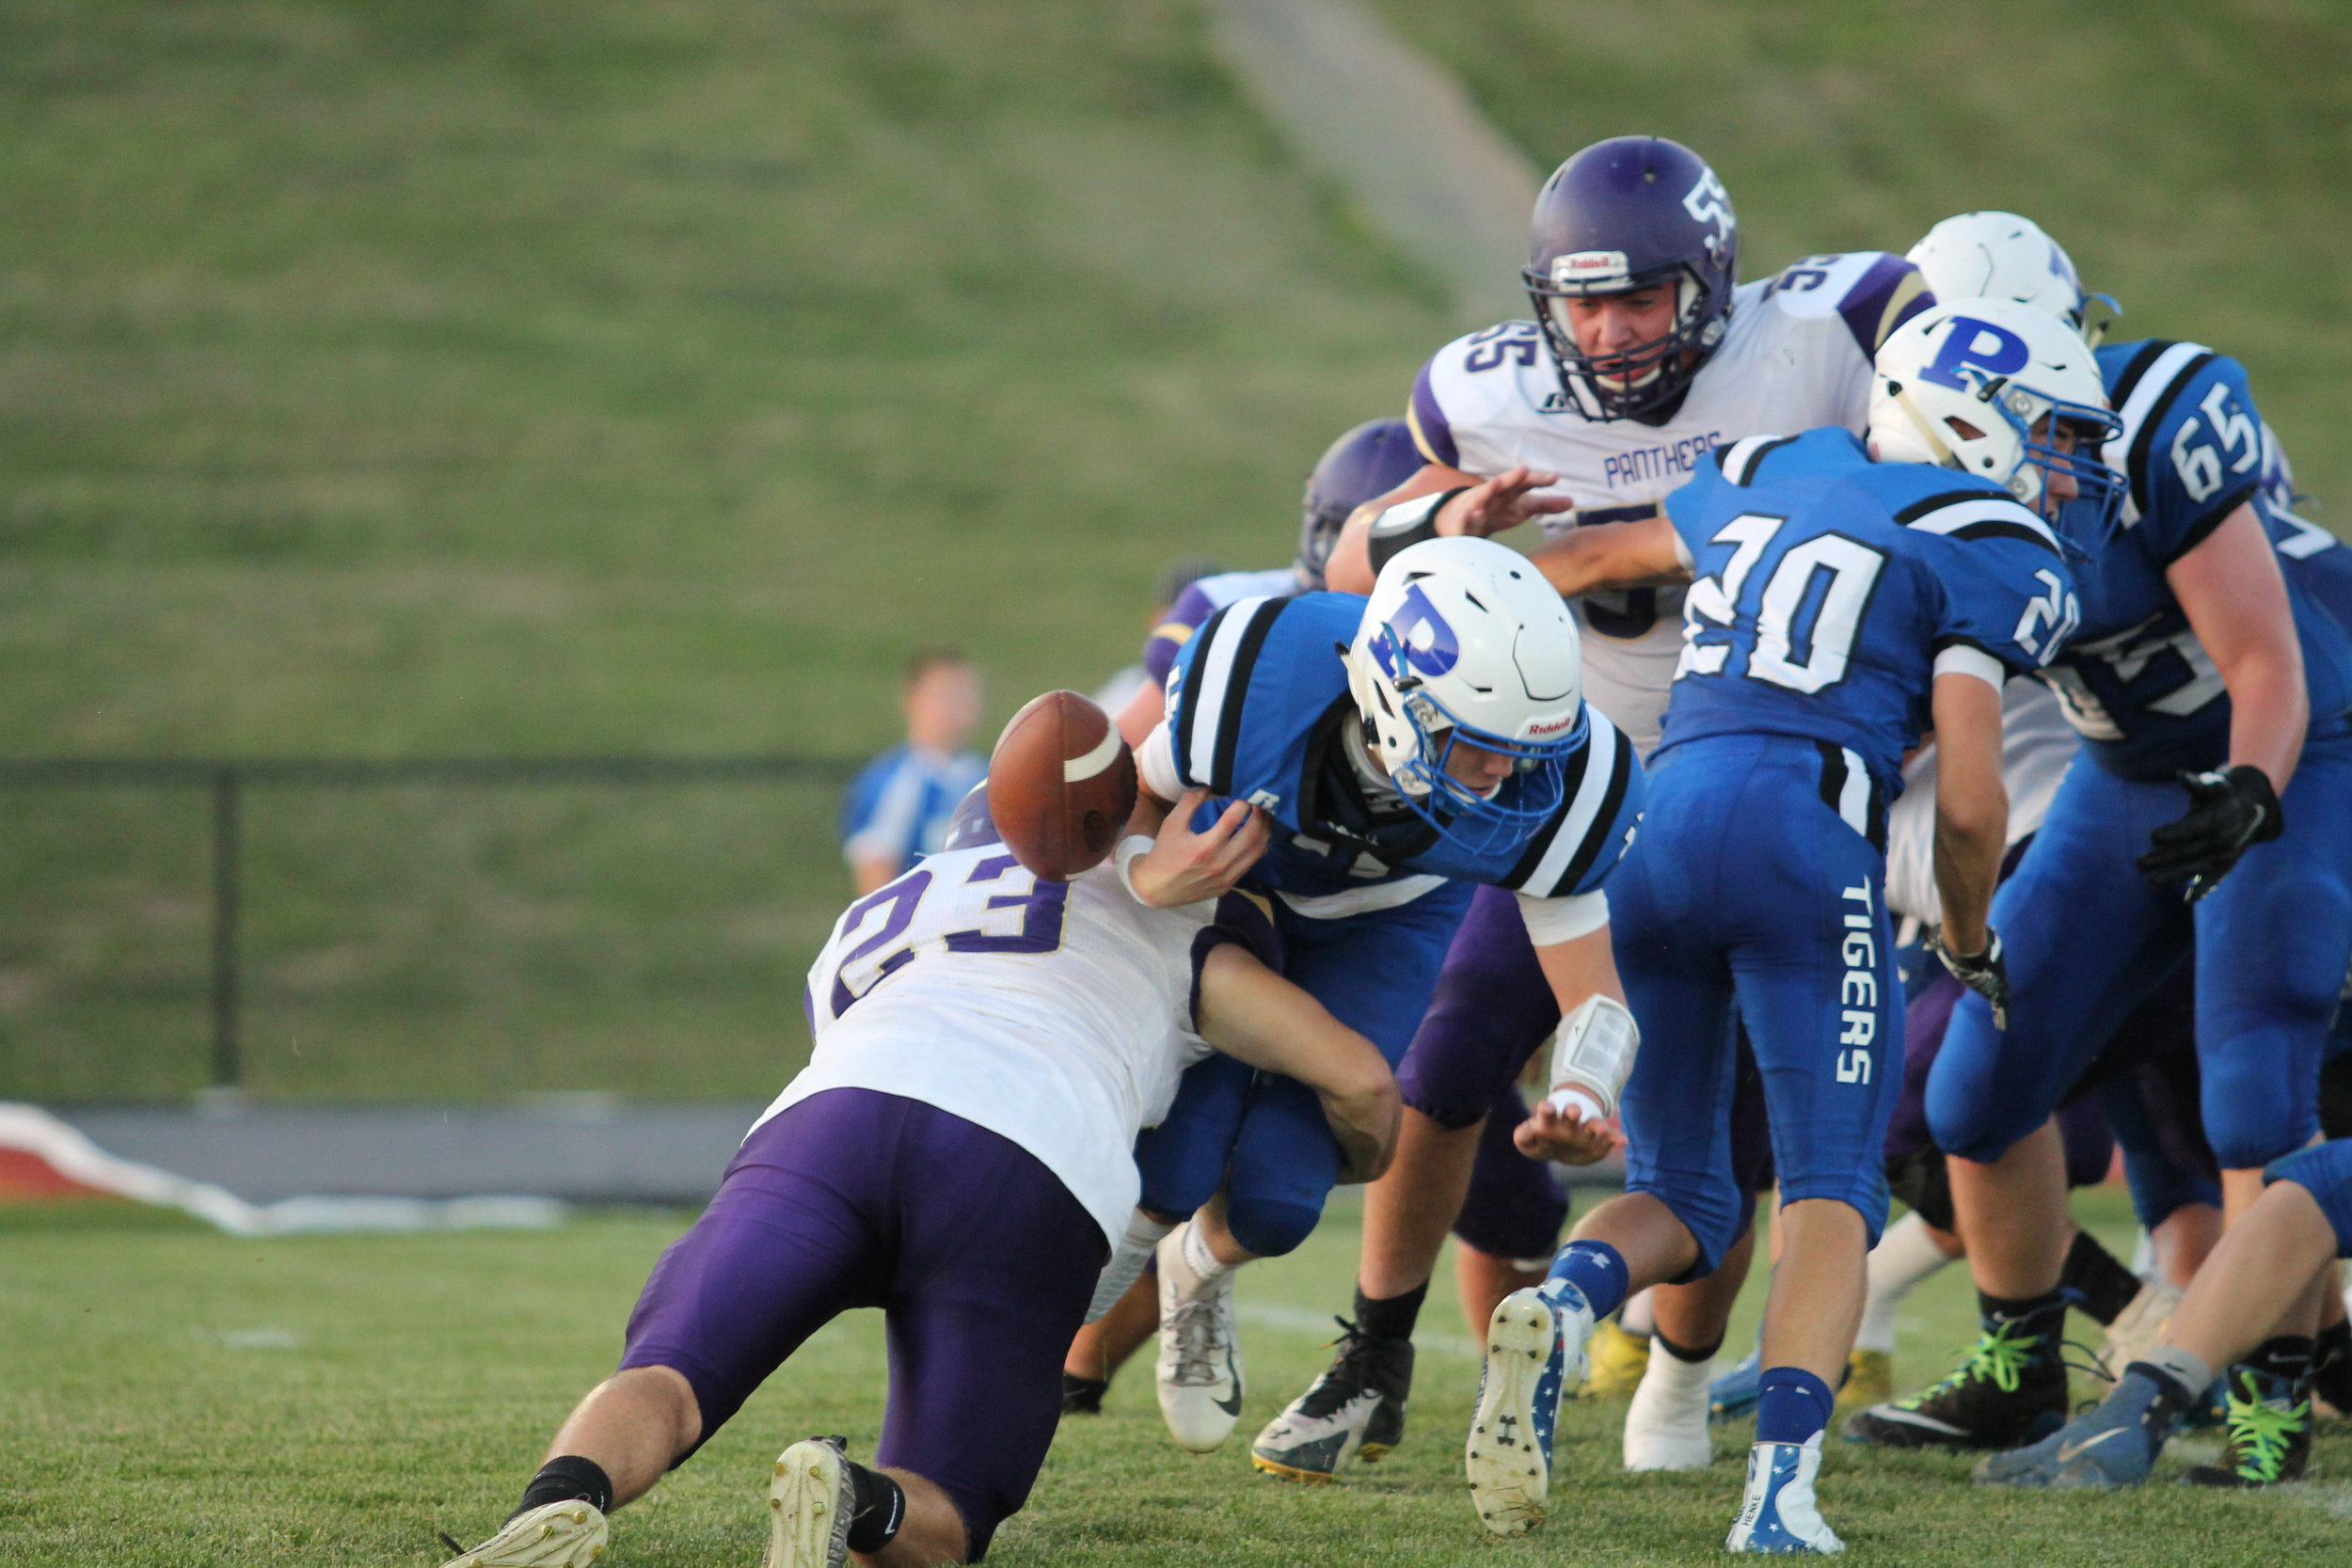 BREANNA CHEADLE/Special to the Citizen  North Platte's Caine Huffman (23) forces a fumble on his hit on the Princeton quarterback during the game on Friday, Sept. 6 in Princeton. The Tigers won the game 41-14 to keep North Platte winless.